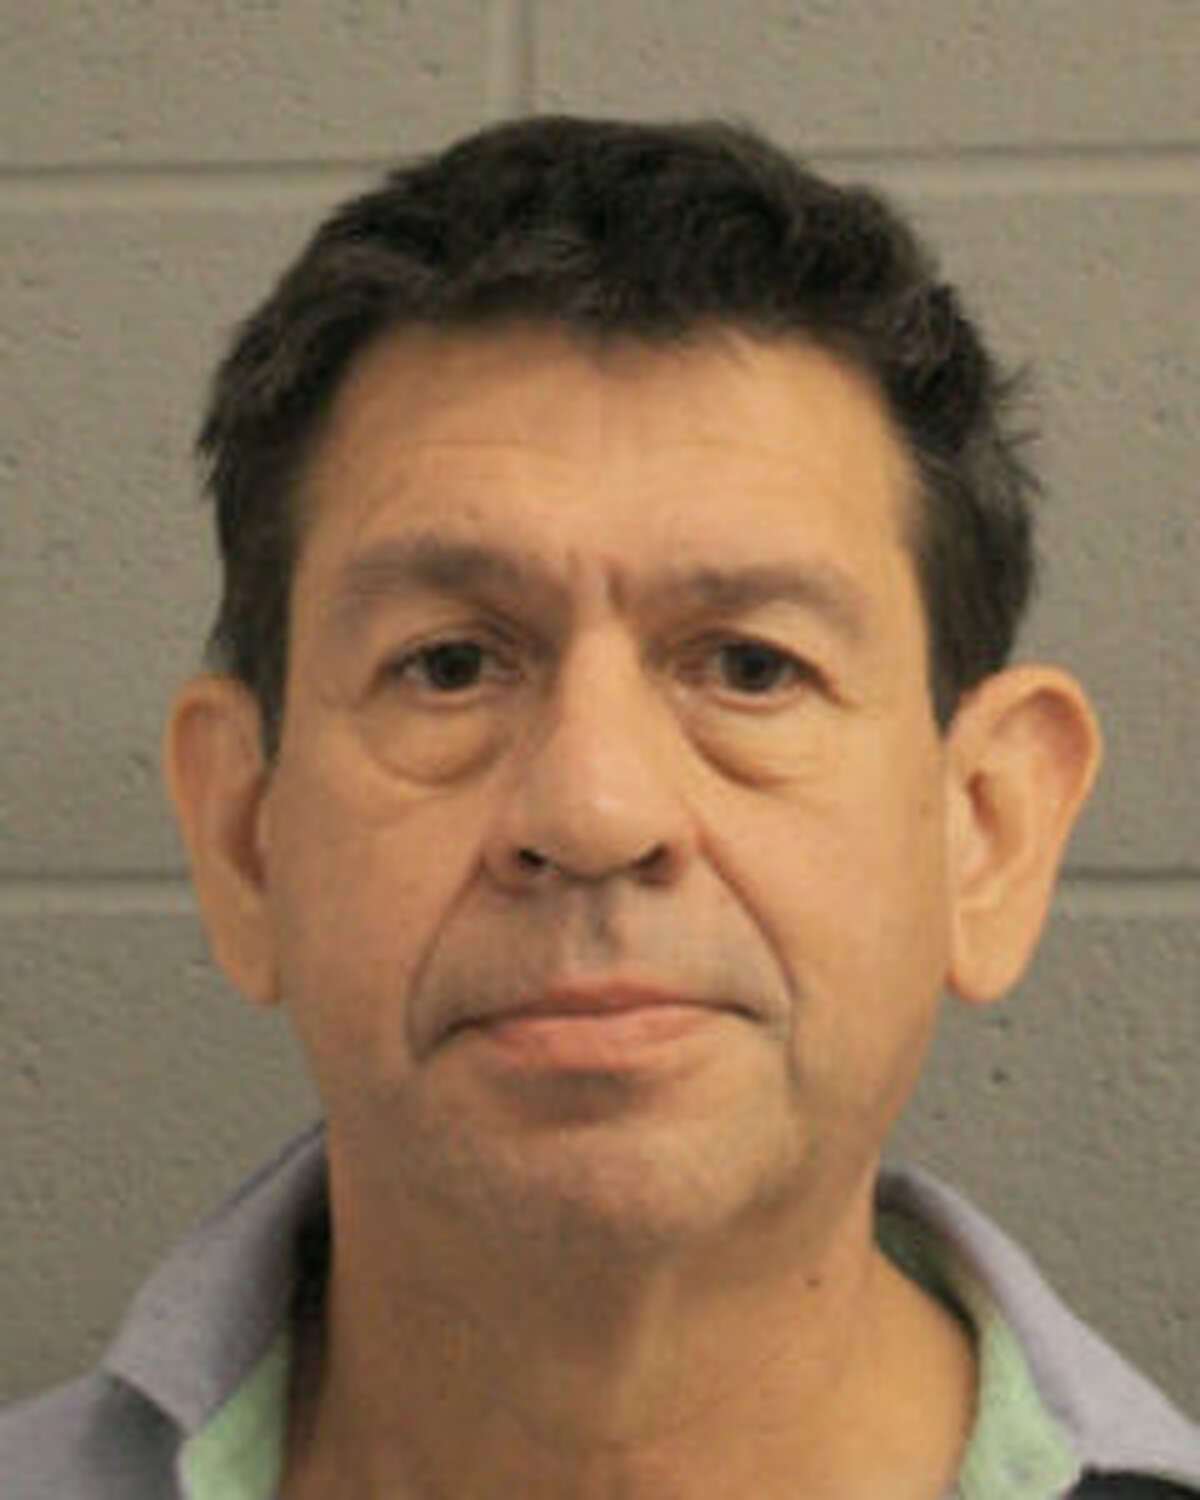 Hector Ricardo Laines, 62,was charged with intoxication manslaughter for a crash that killed a 60-year-old woman riding in his car on Sunday in north Houston, according to police.